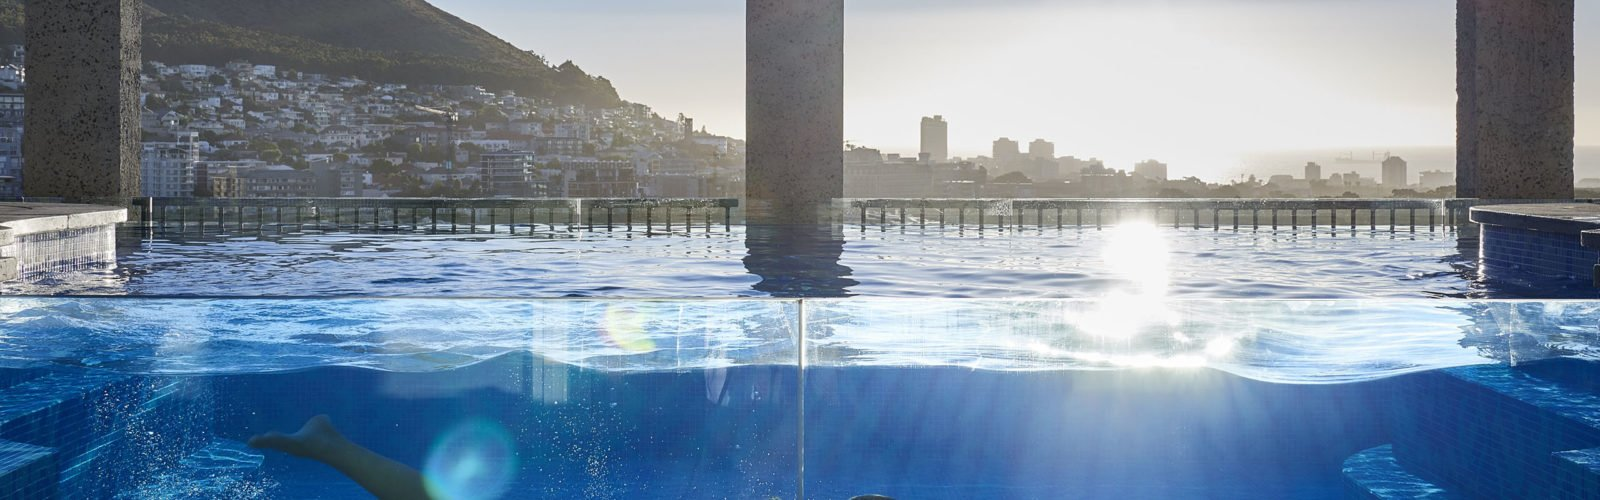 The pool at The Silo, V&A Waterfront, Cape Town, SOuth Africa